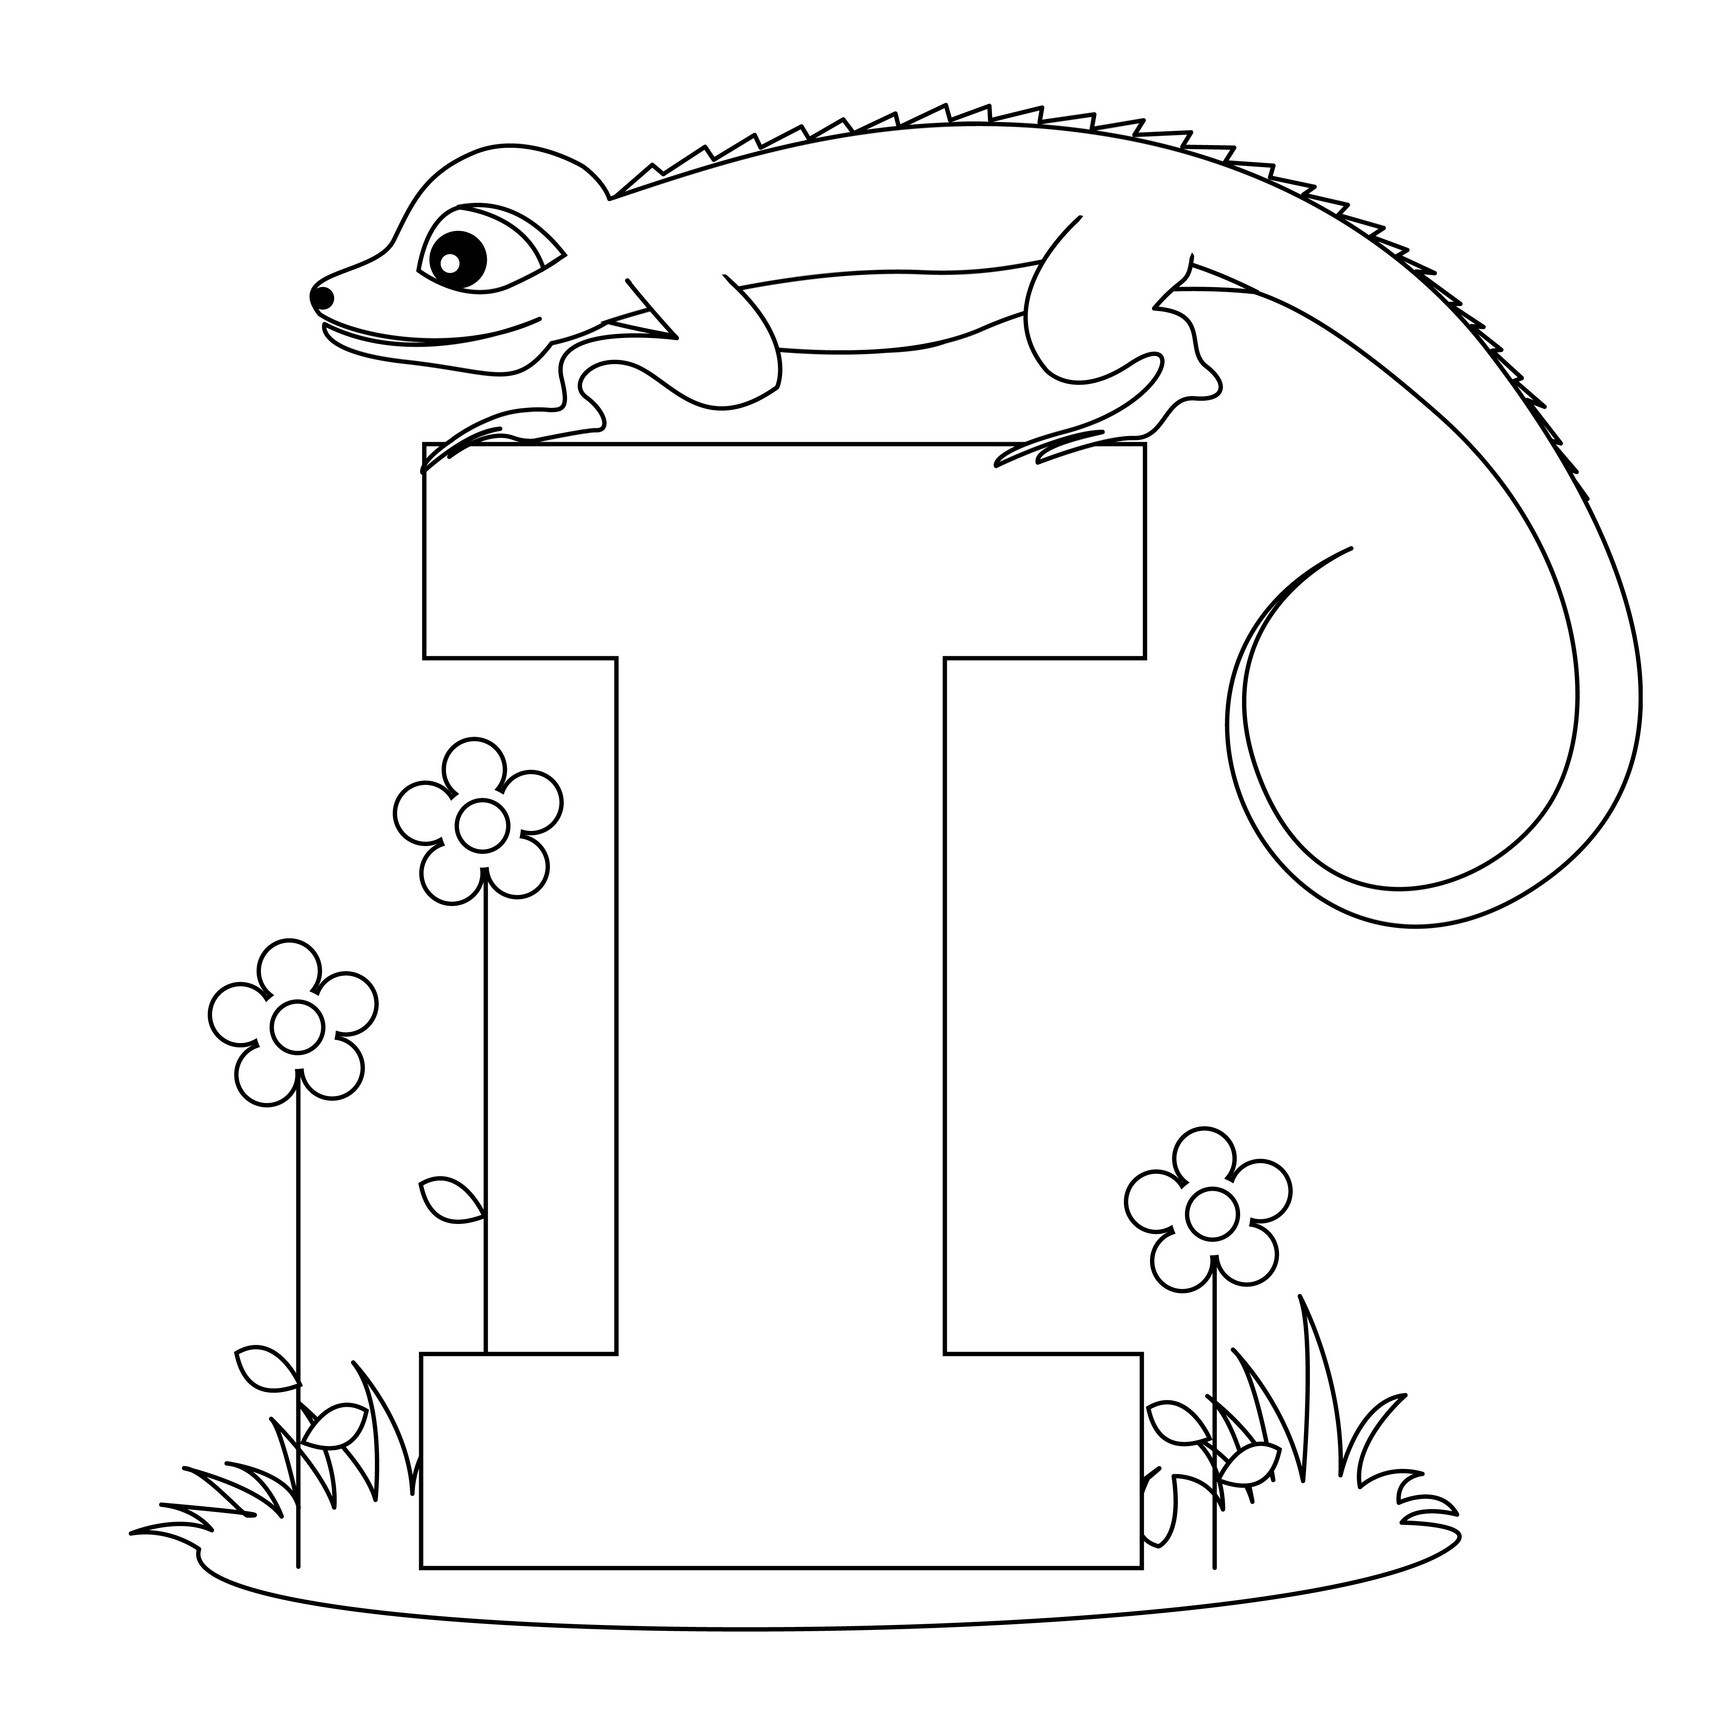 letter a coloring page free printable alphabet coloring pages for kids best letter page a coloring 1 1